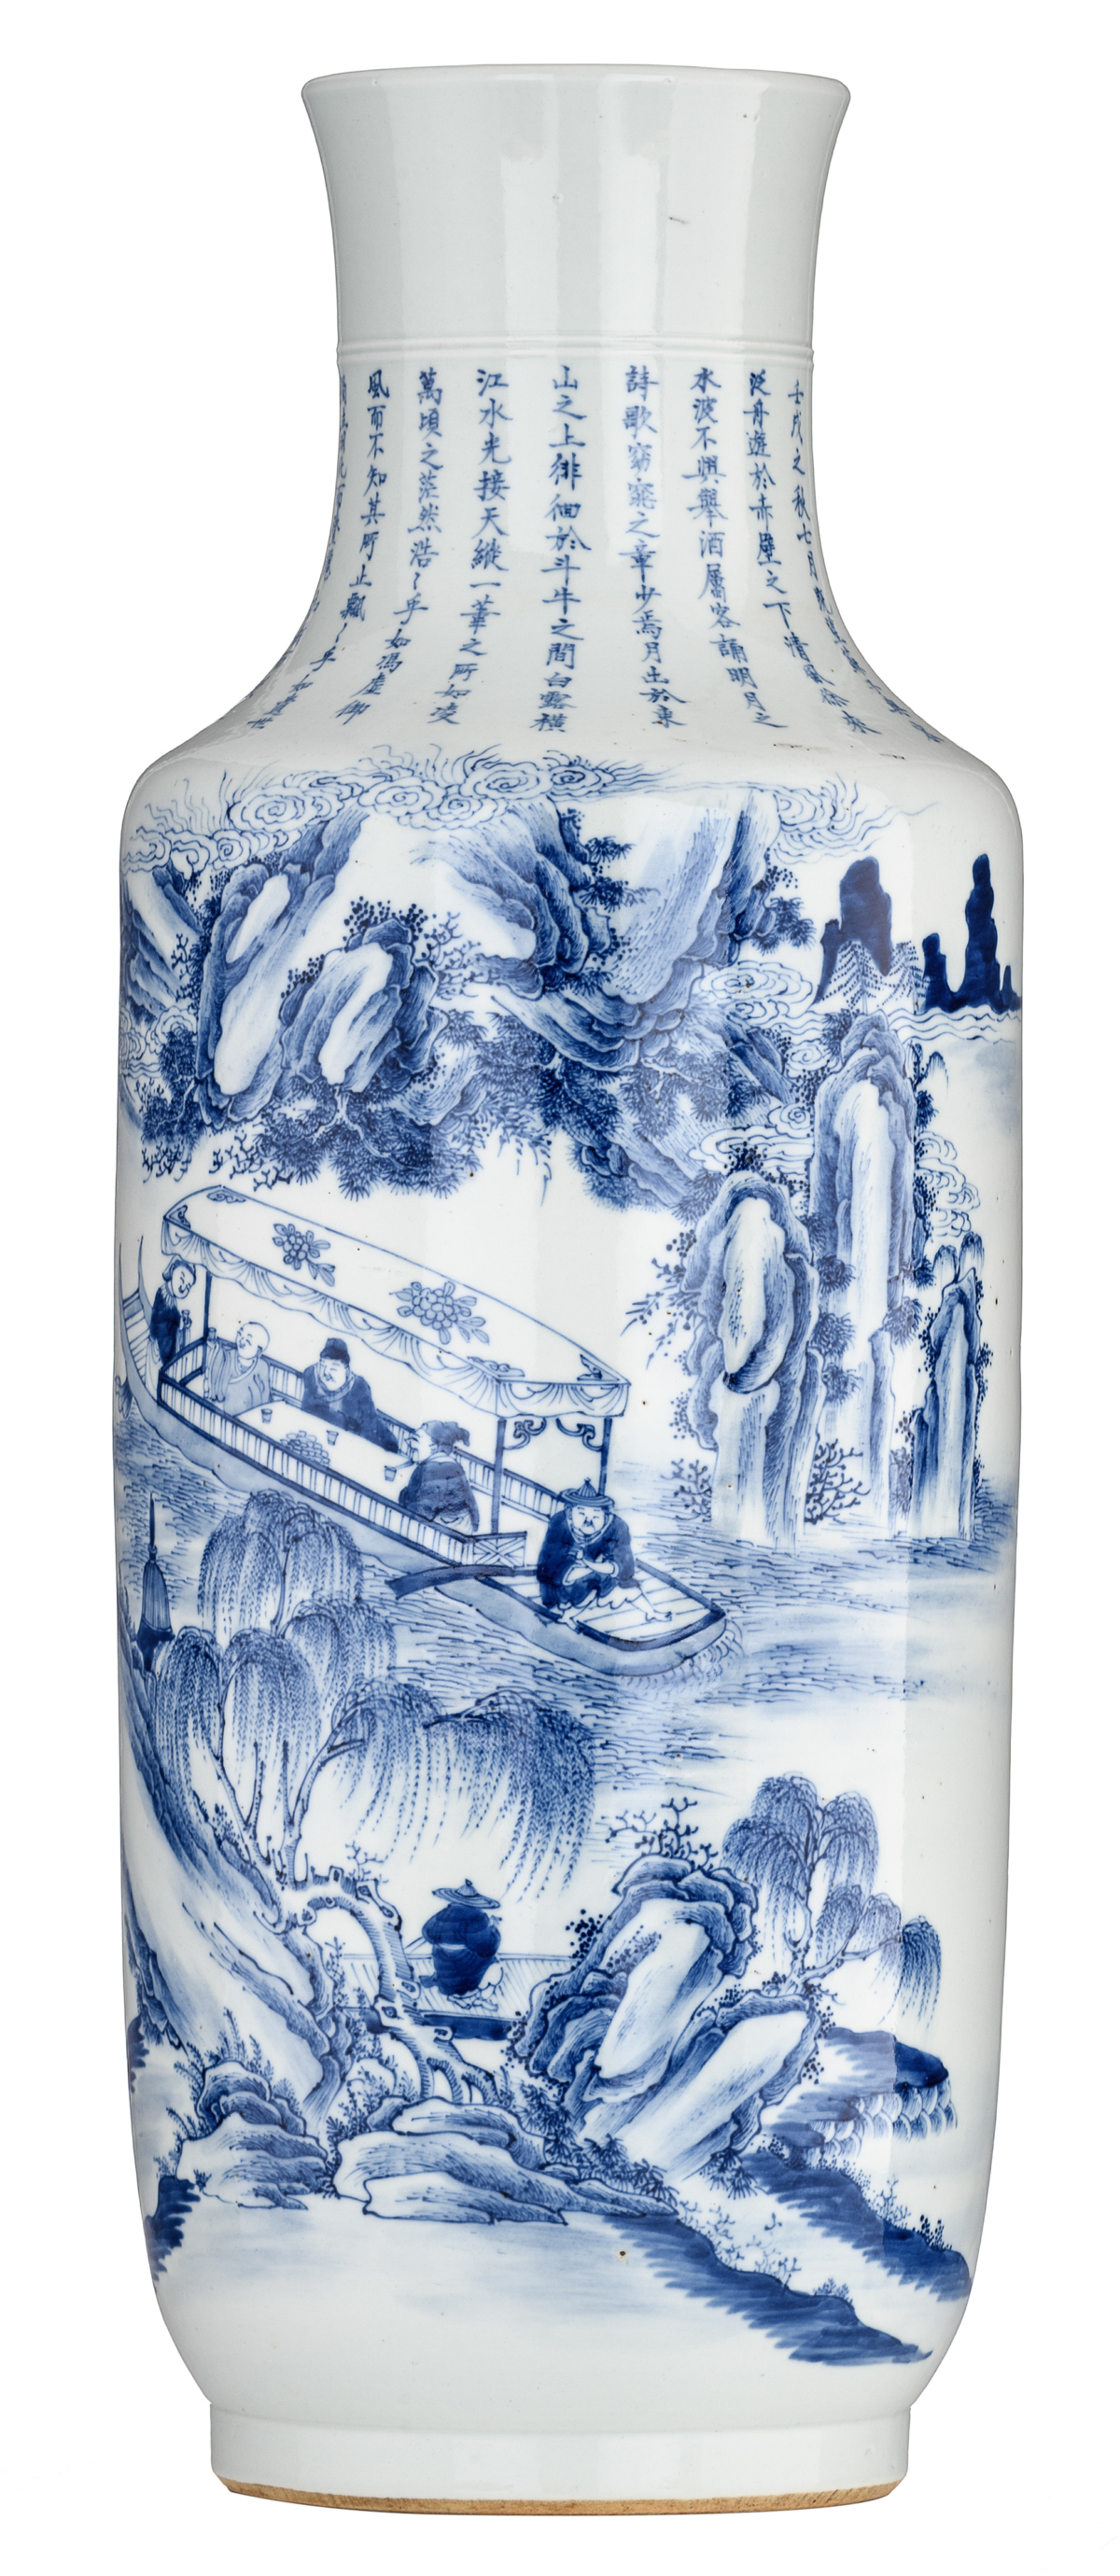 Lot 50 - A Chinese blue and white rouleau vase, the decoration depicting figures on a boat gliding through